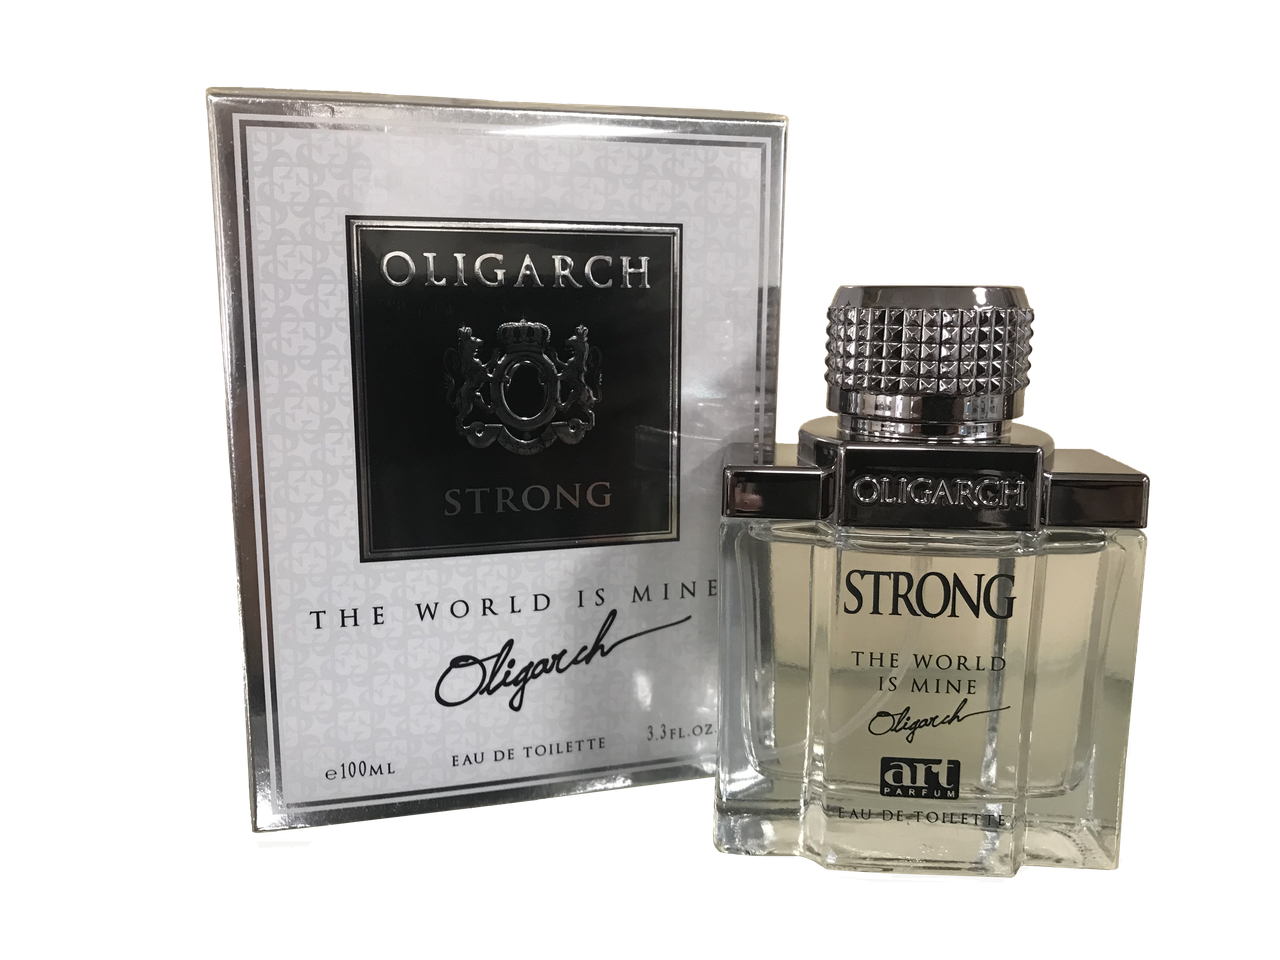 Oligarch Strong Art Parfum